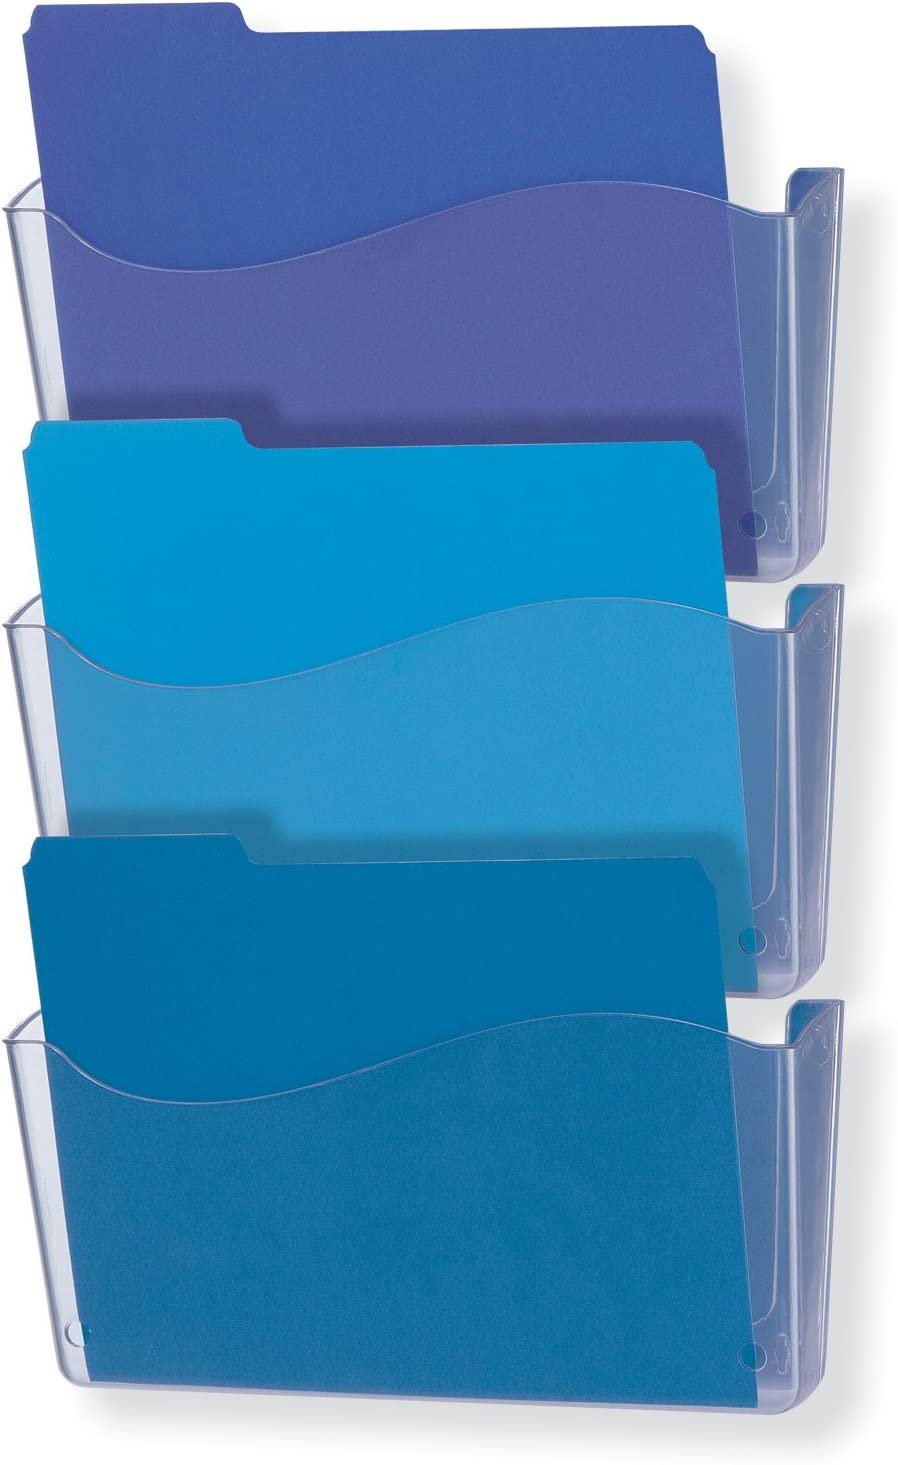 Officemate Unbreakable Wall File, Letter/A4 Size, Clear, 3 Pack (21654)